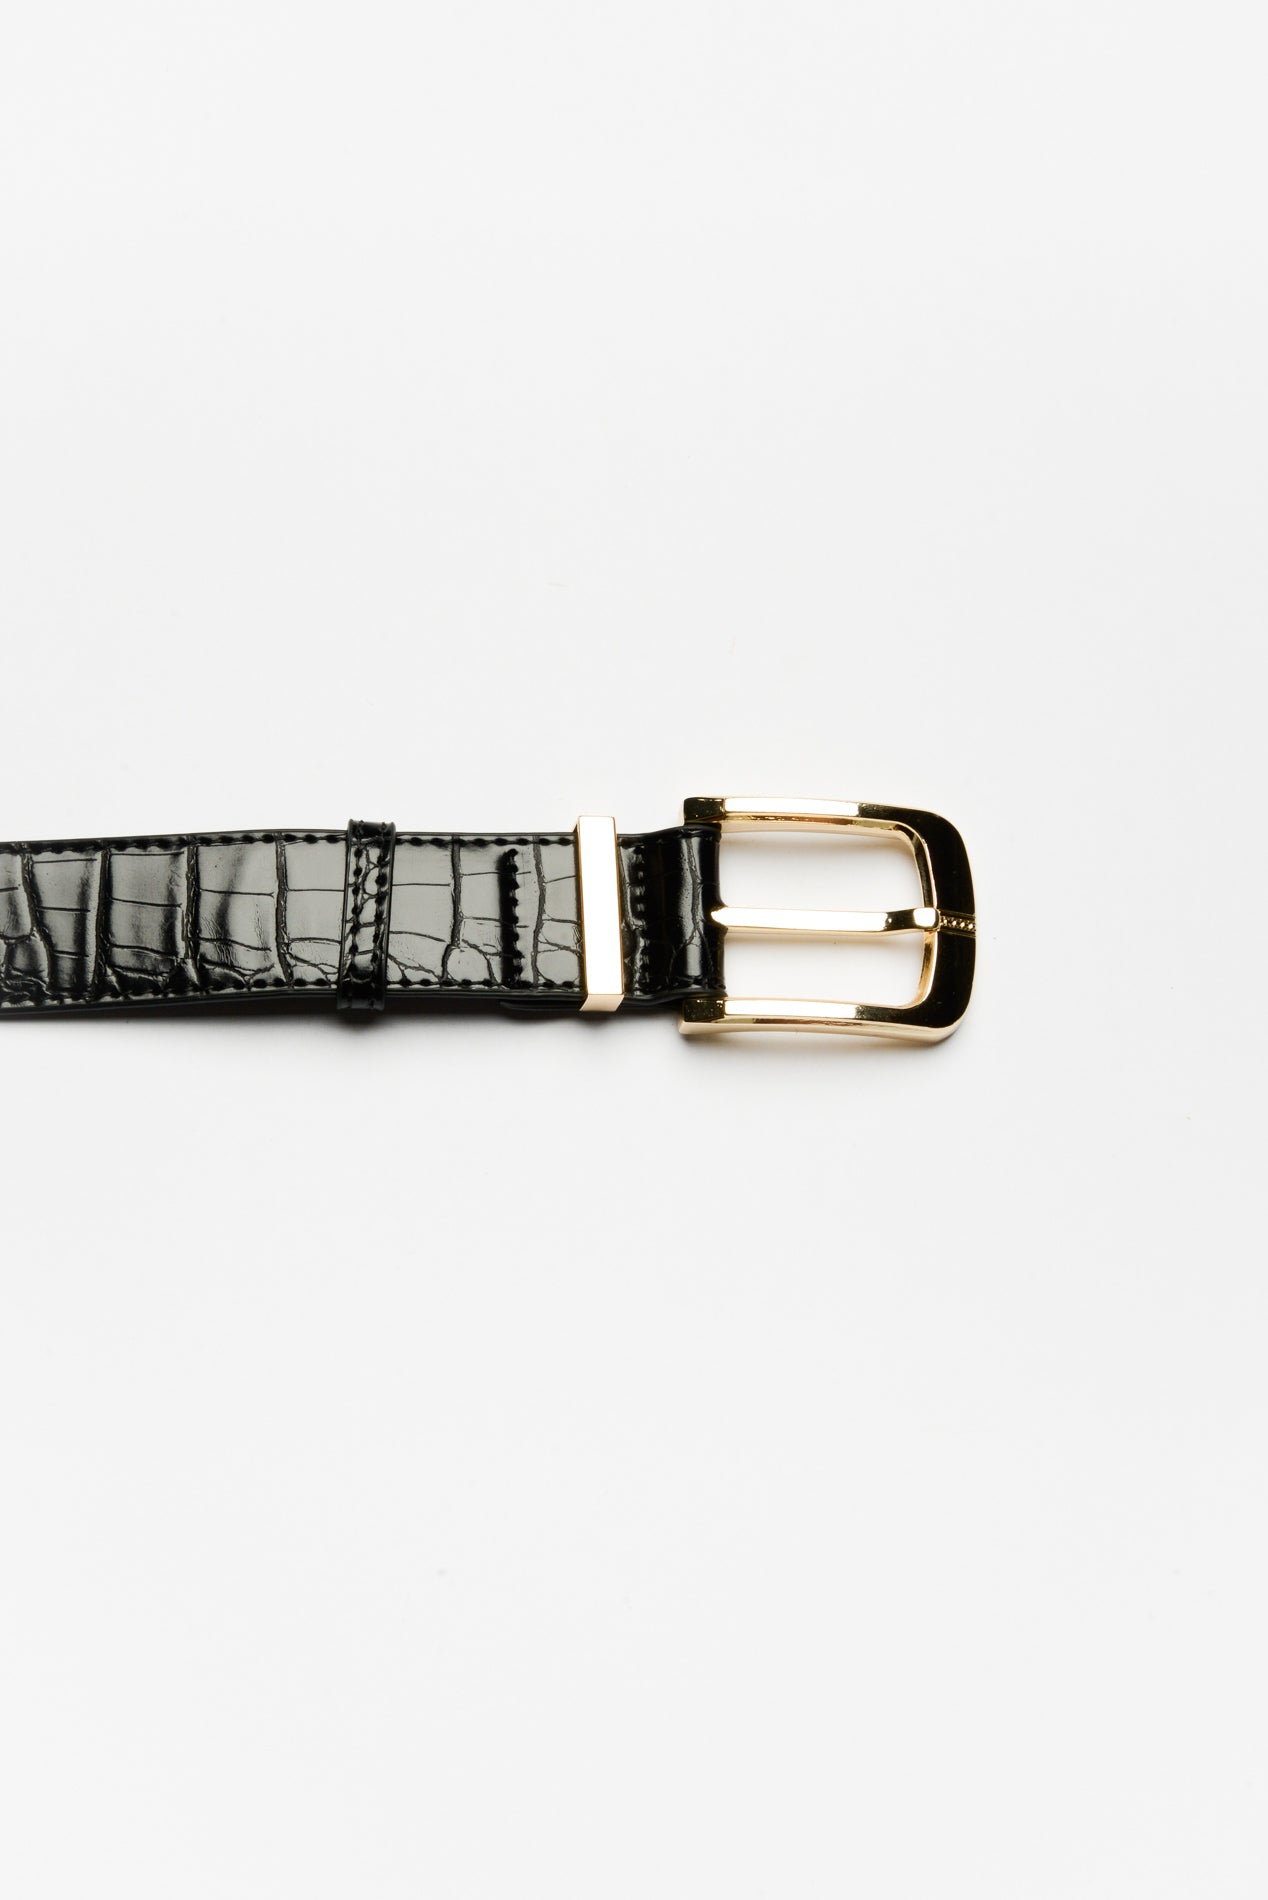 Black Croc Embossed Belt - Blue Bungalow